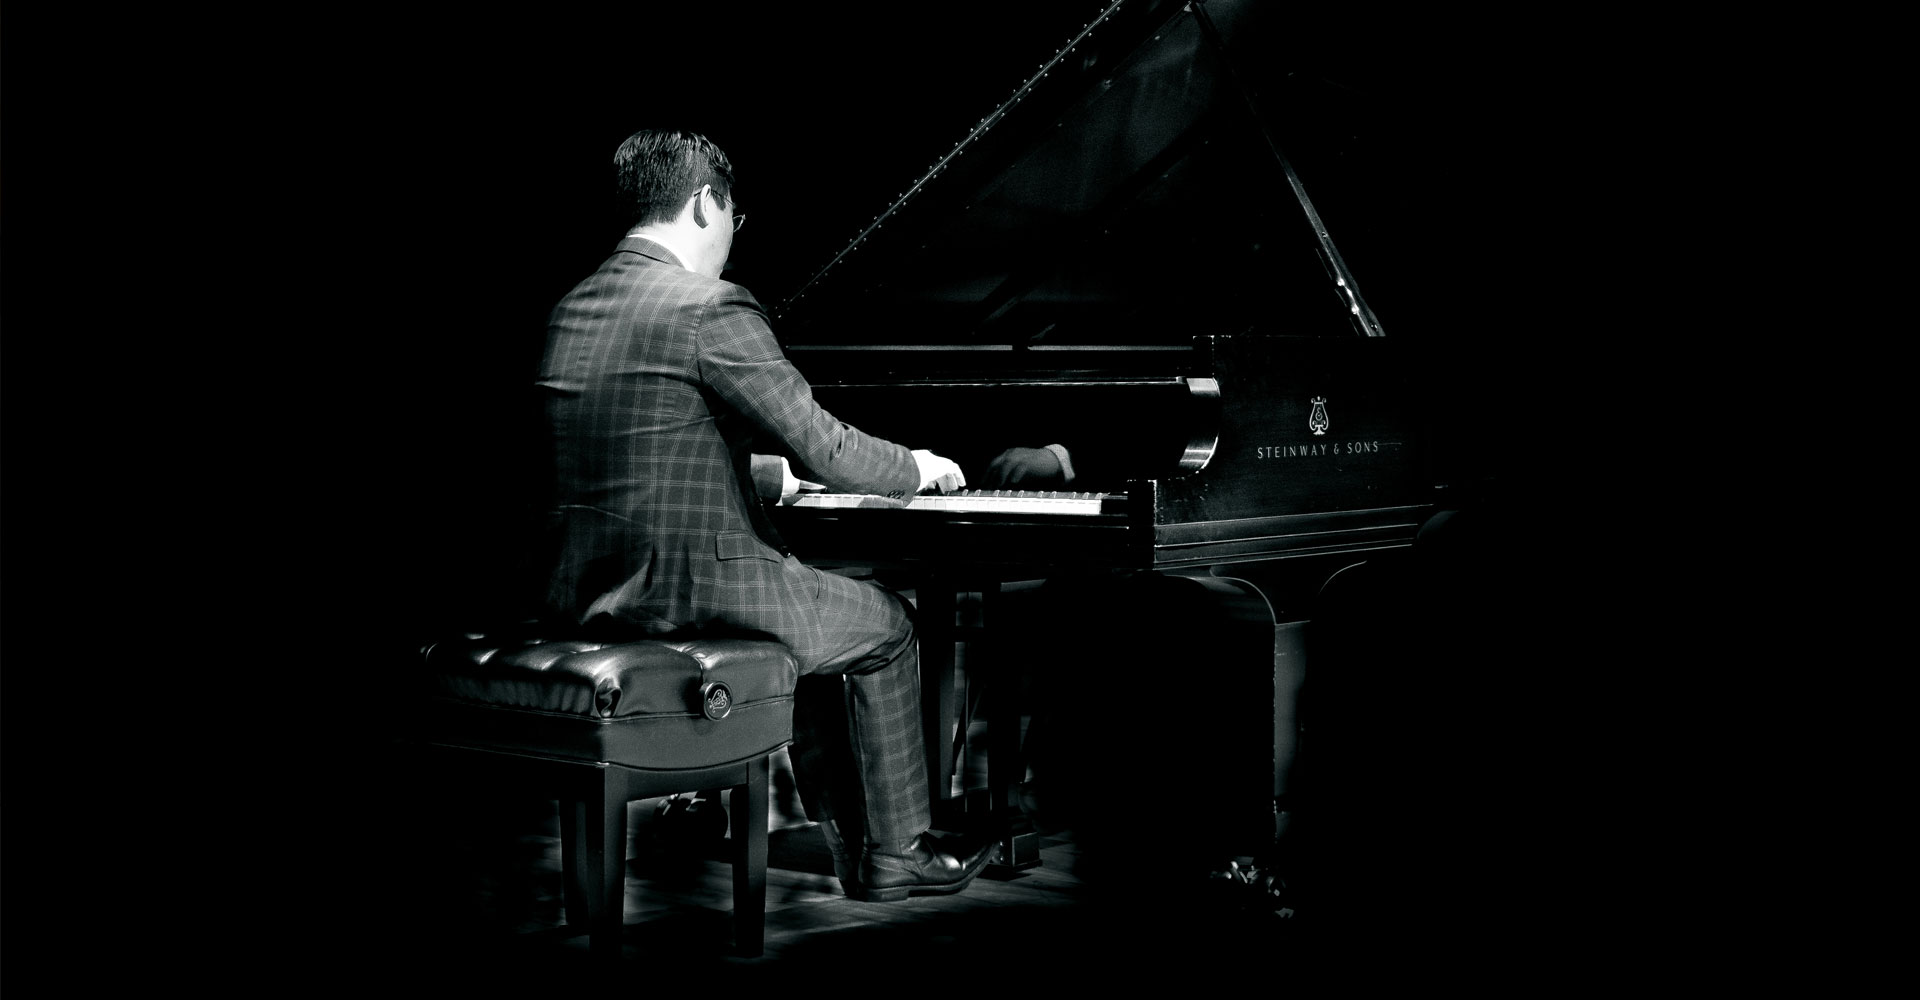 Chih-Long Hu playing piano